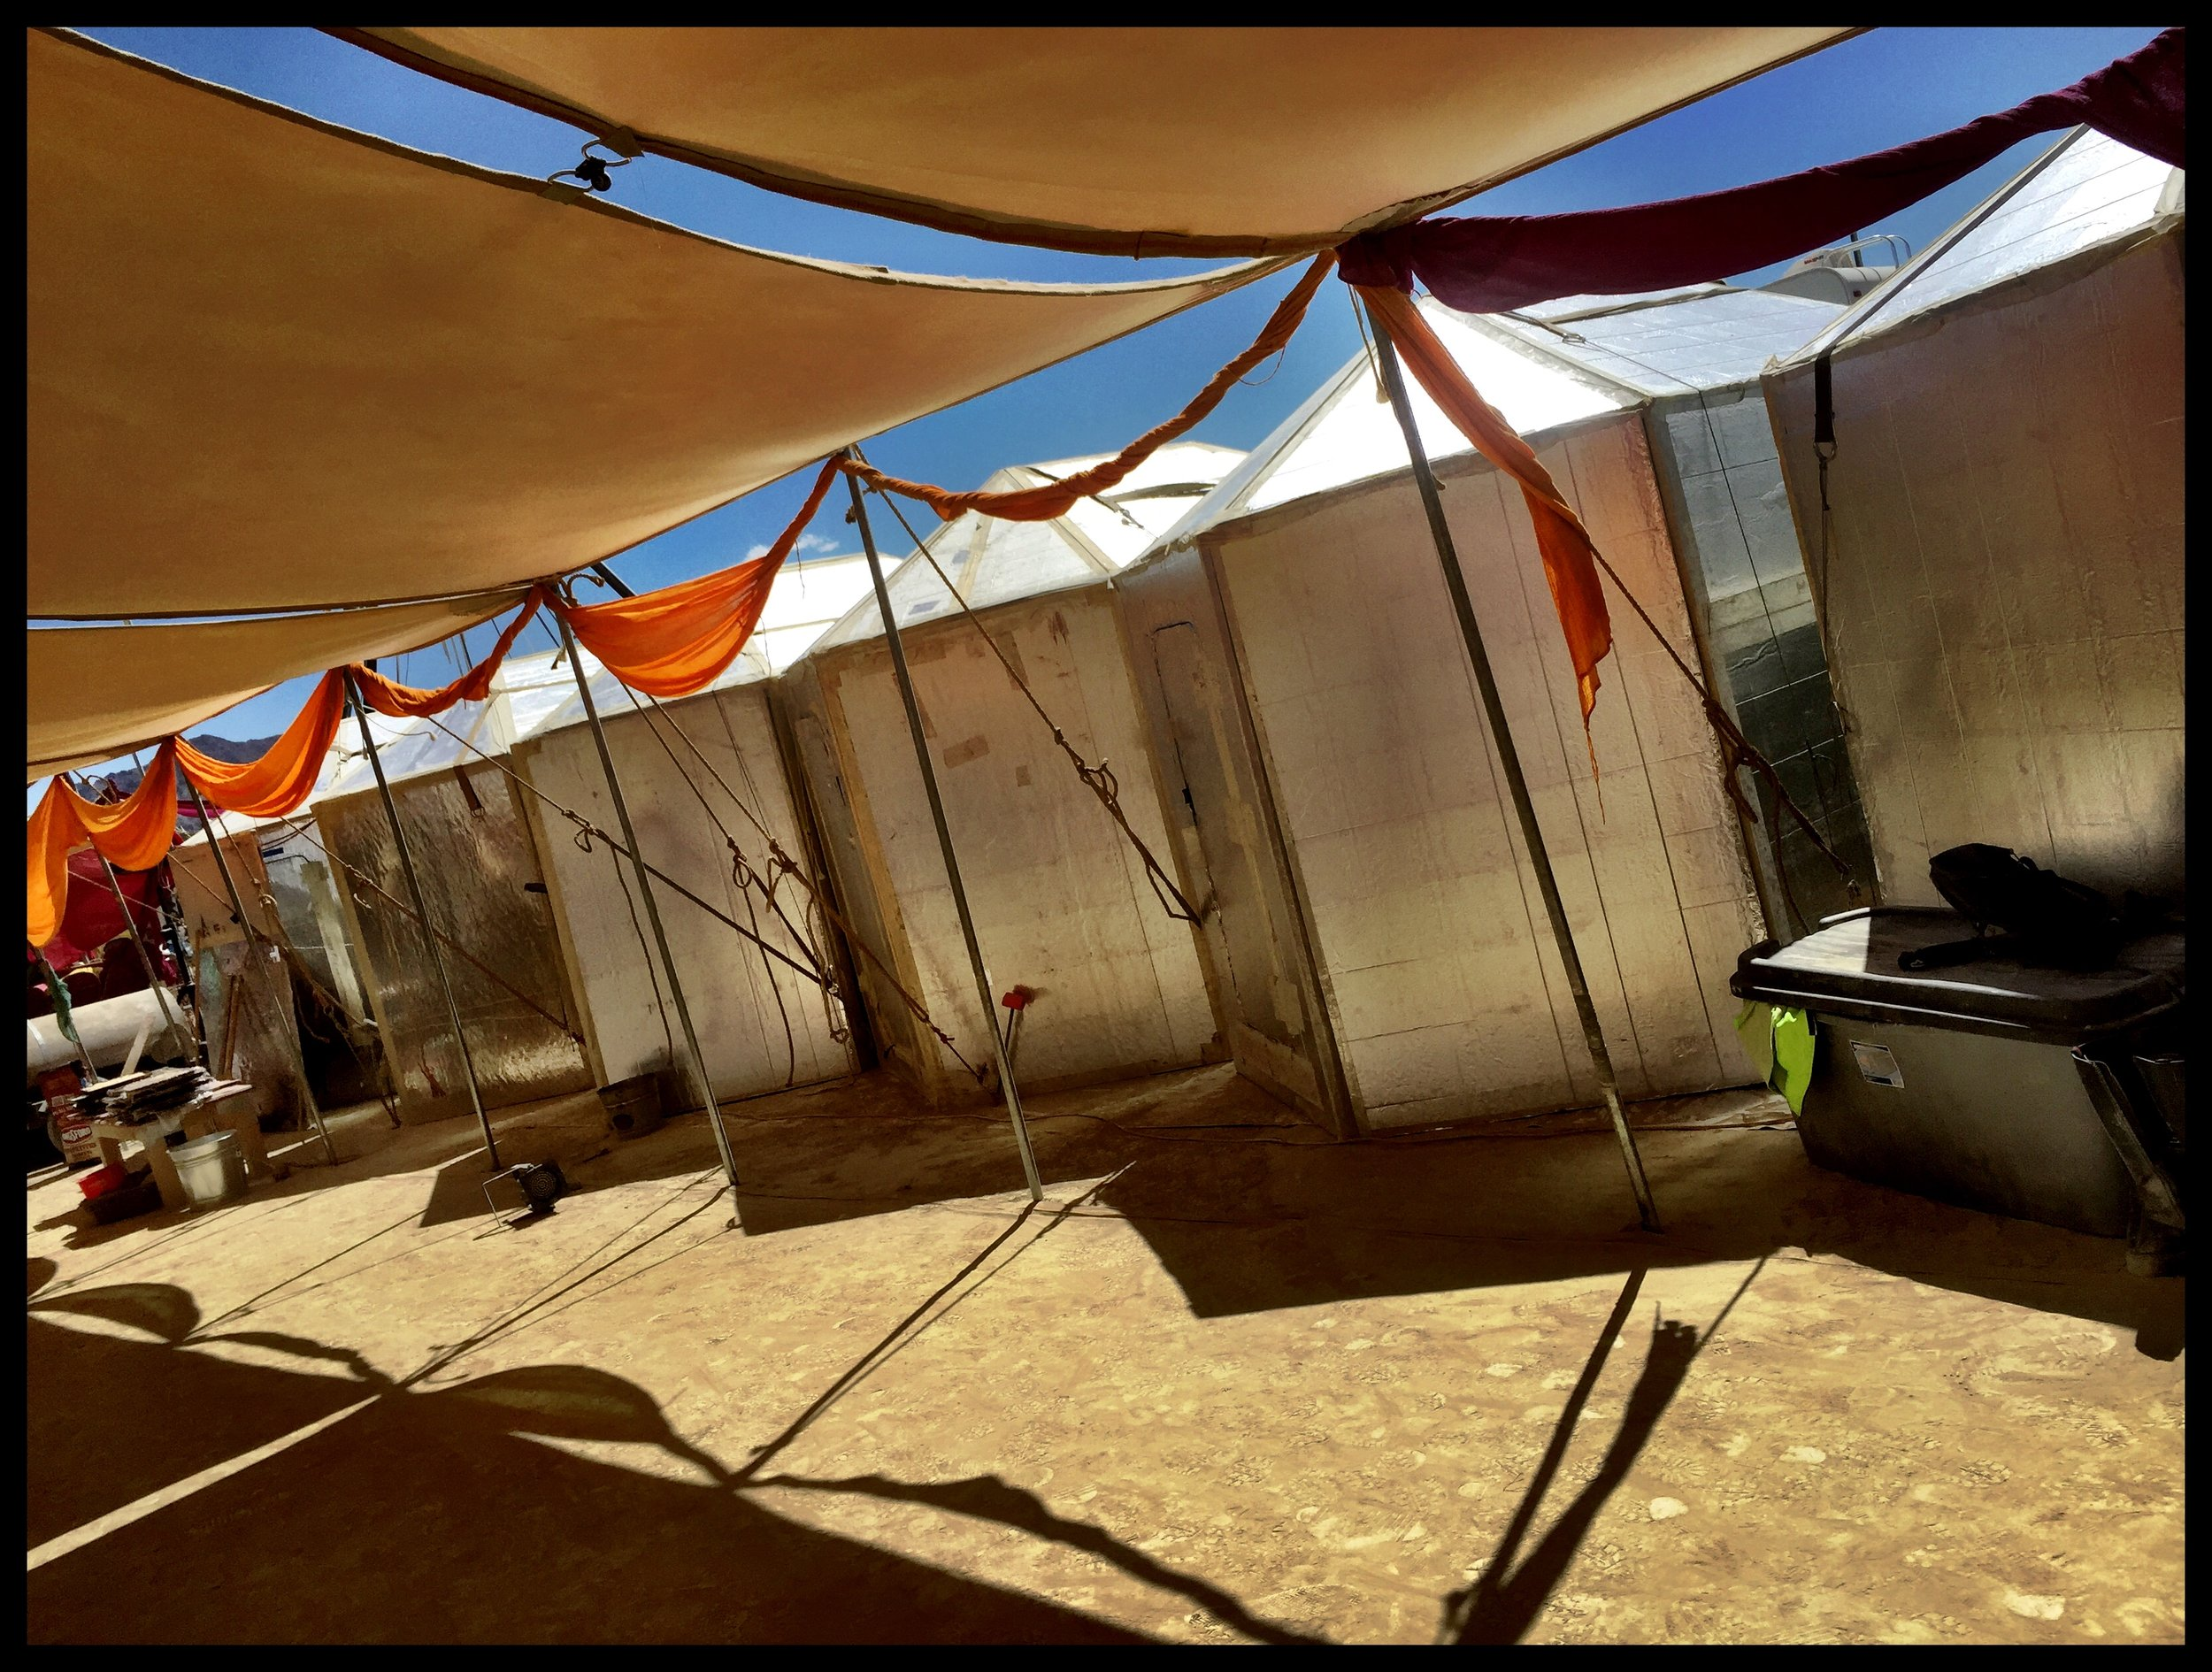 Nestled in yurts create perfect wind/dust break for our communal area